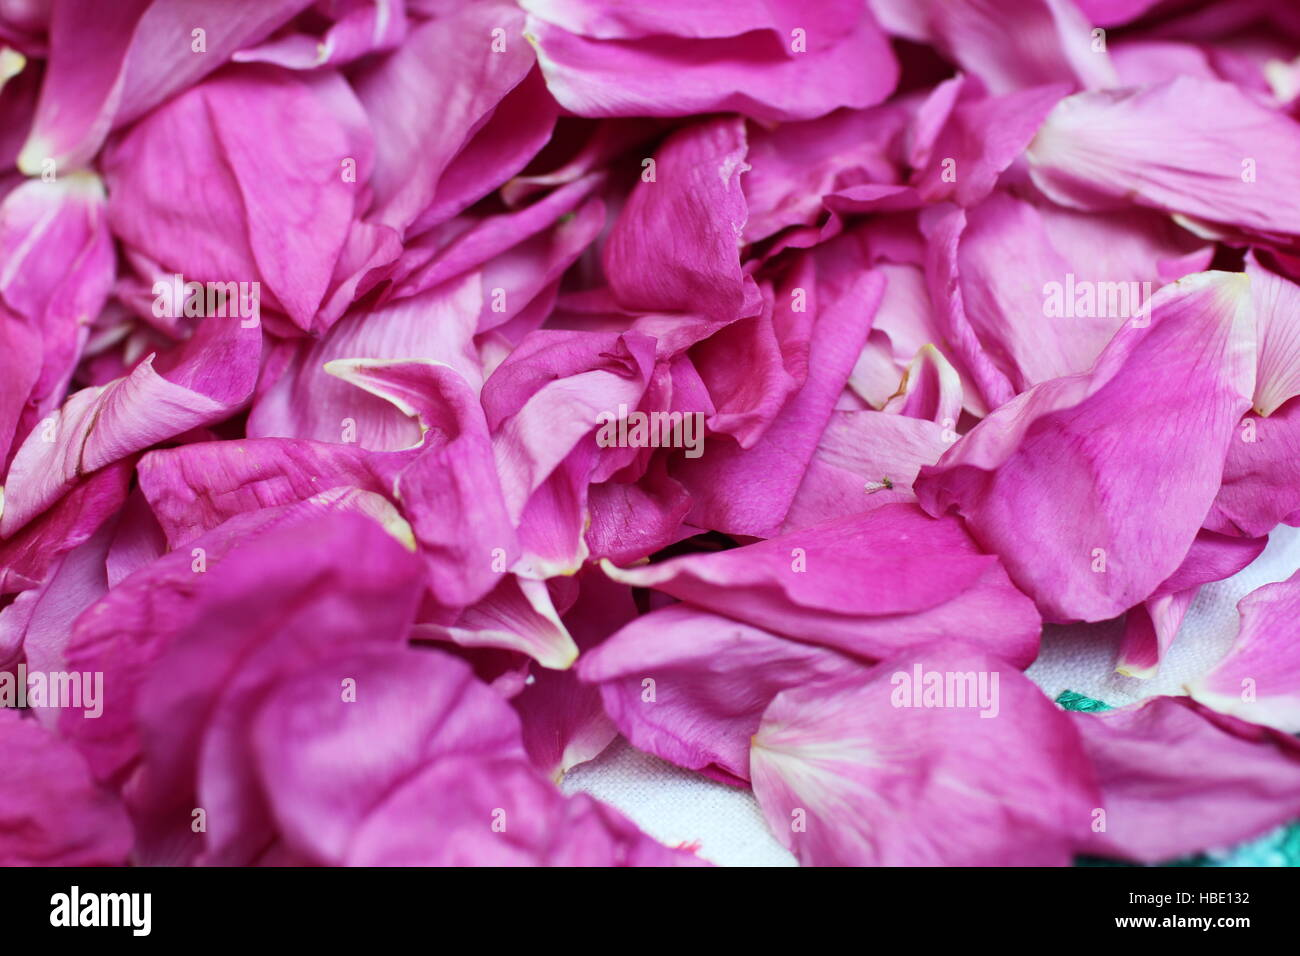 the ragged petals rose - Stock Image